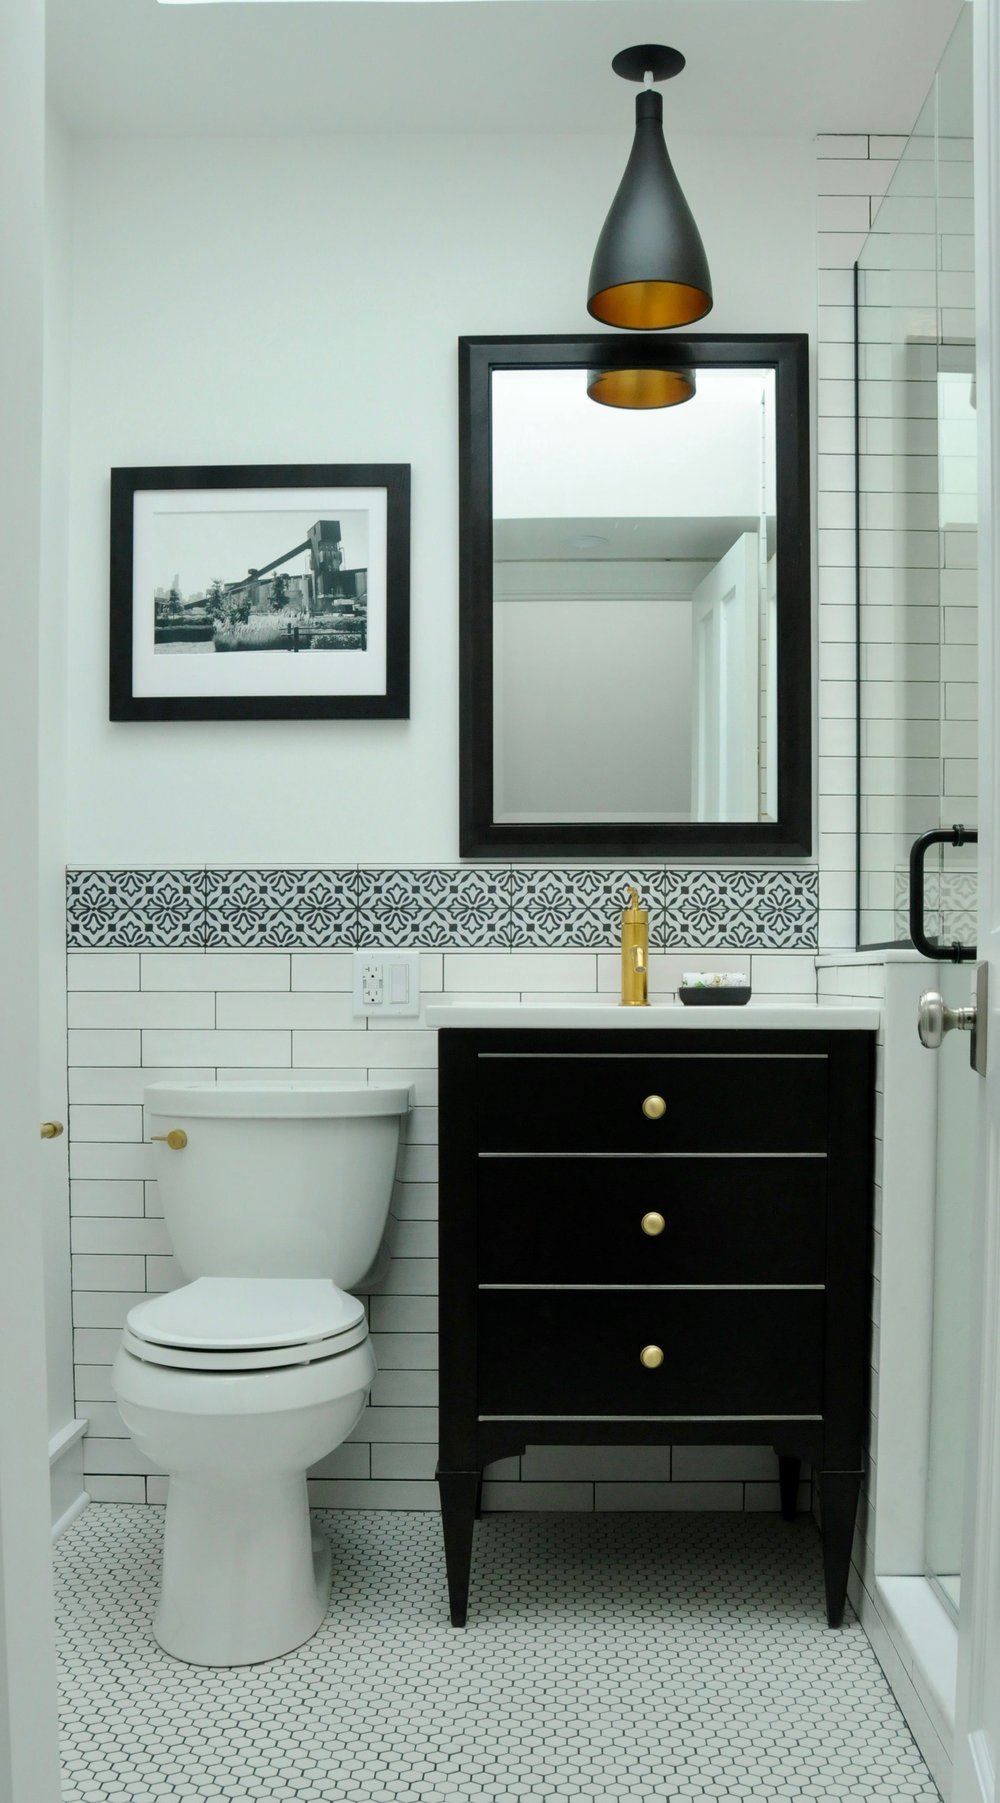 The new bathroom exchanges the short pedestal sink for a full-height black vanity with storage, the polished chrome for warmer tones, and the ongoing maintenance of white grout for charcoal.